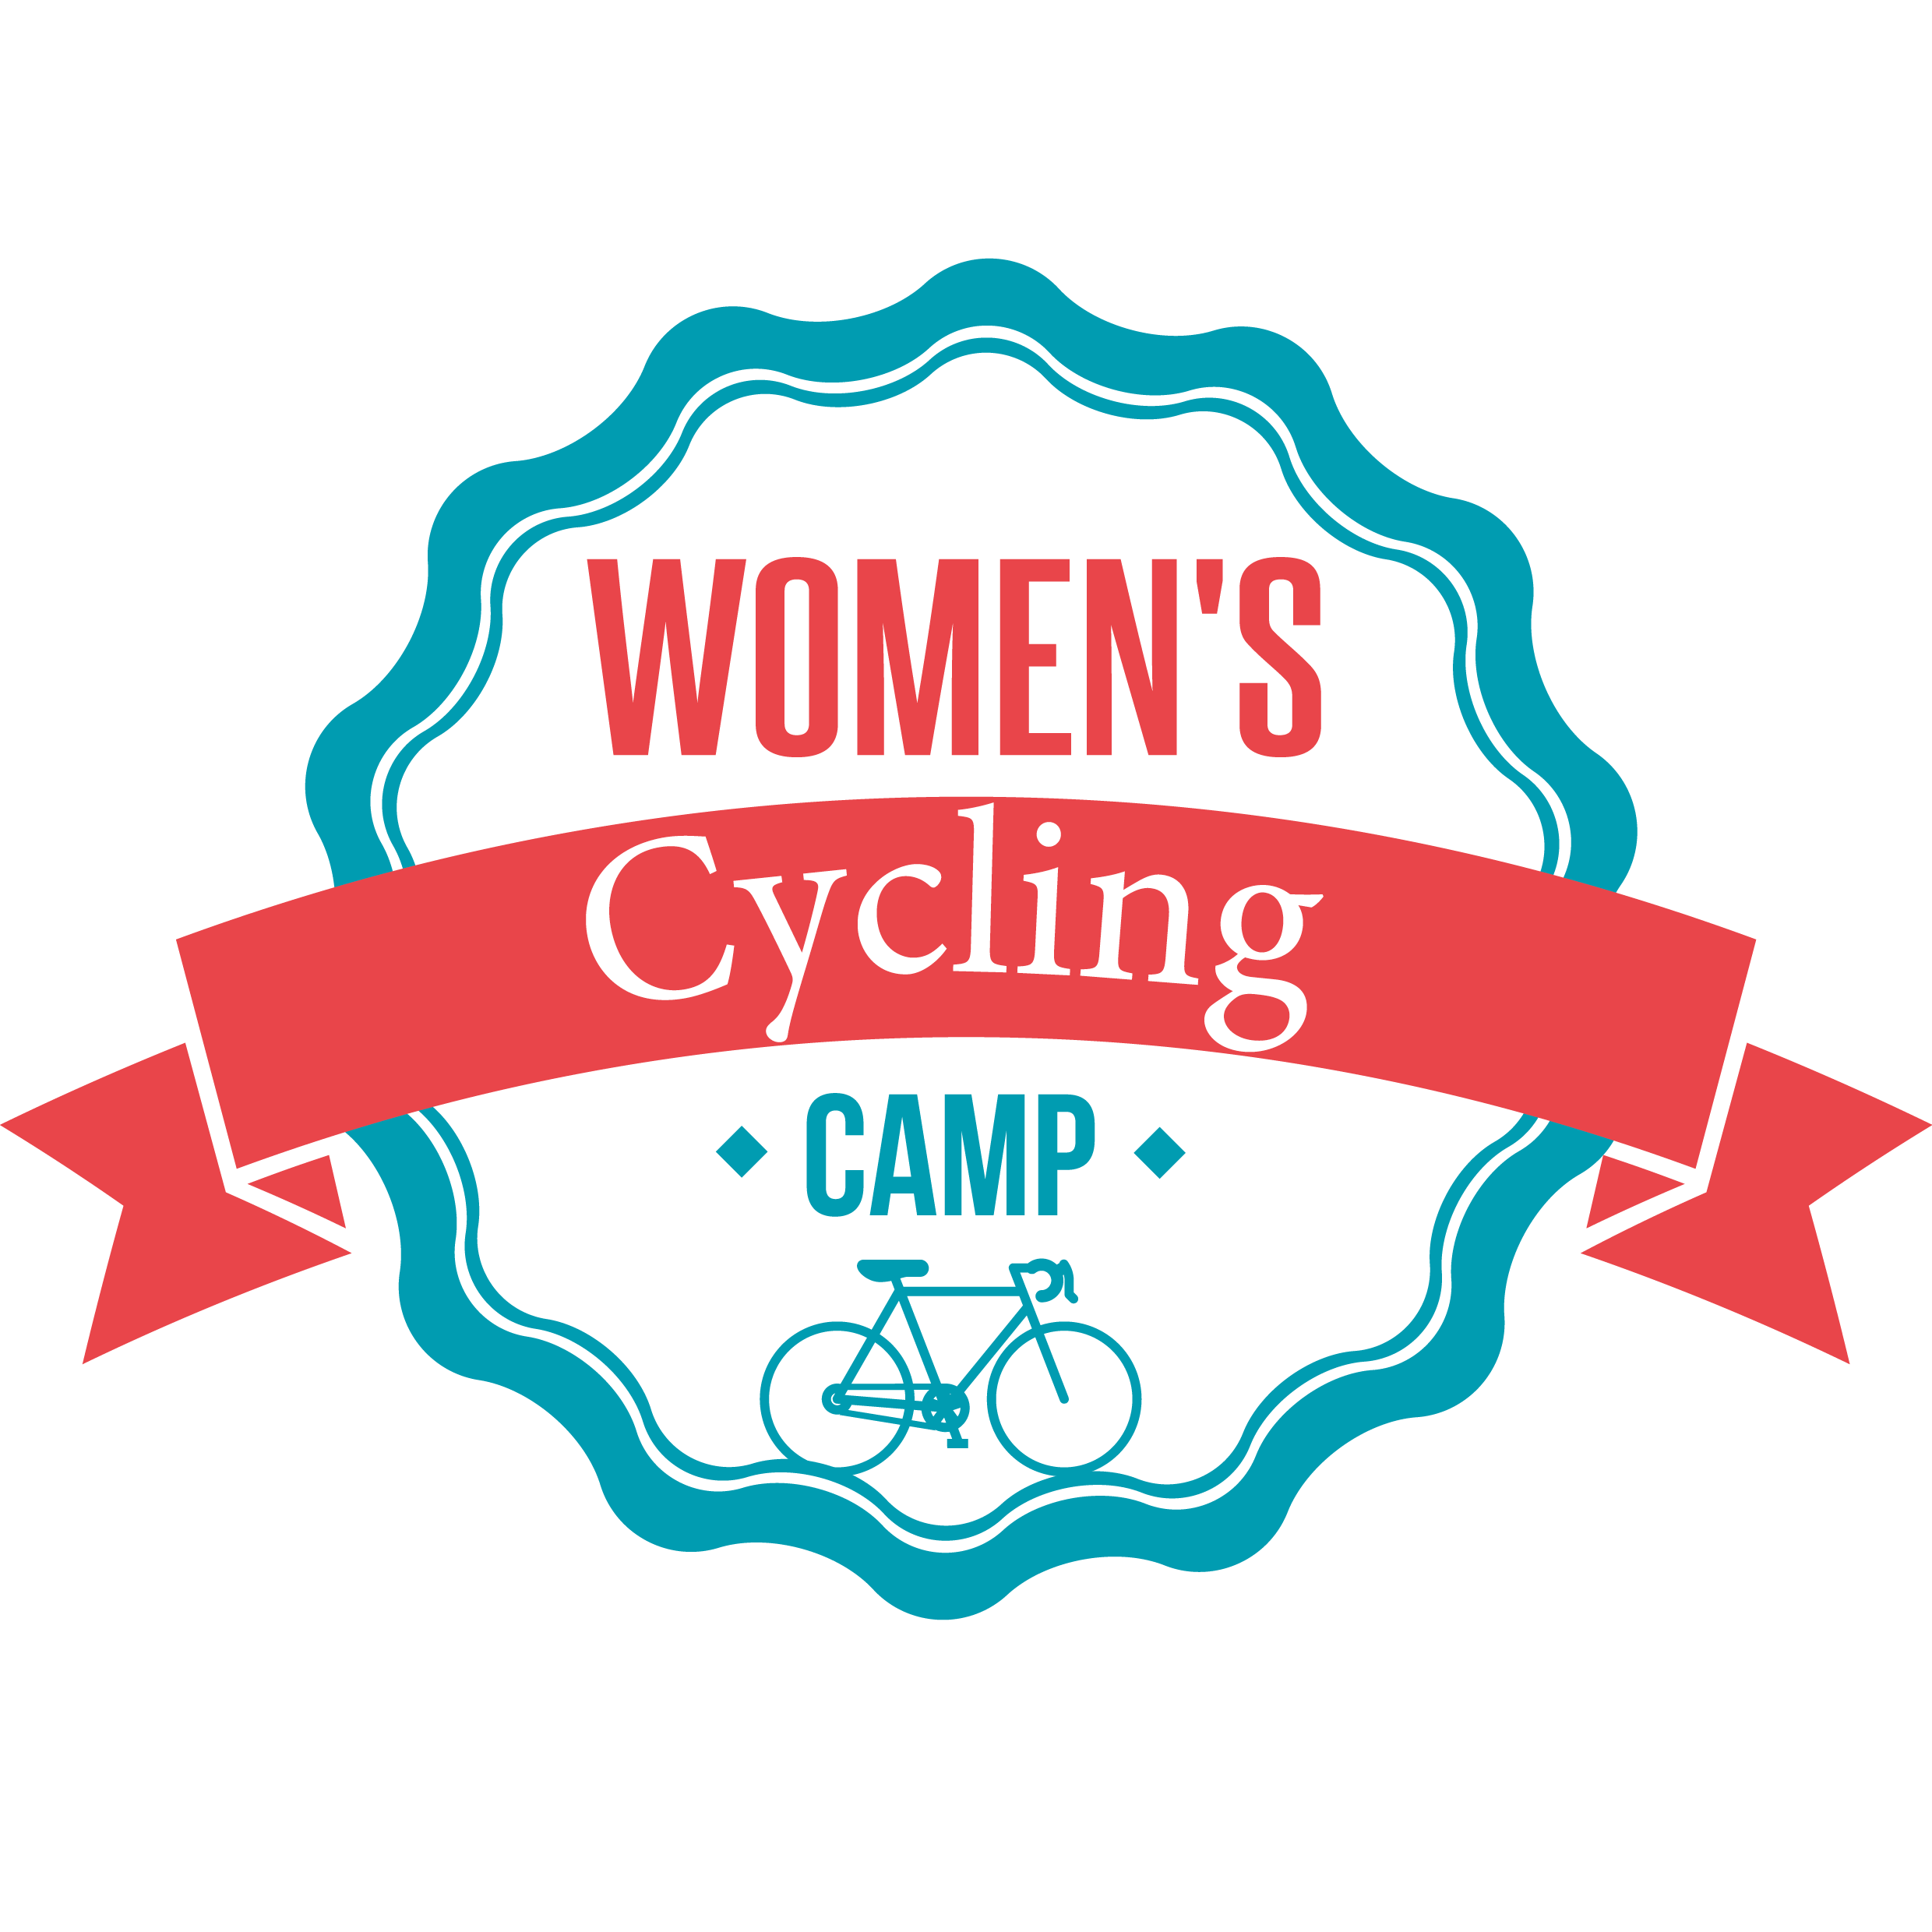 Women's Cycling Camp